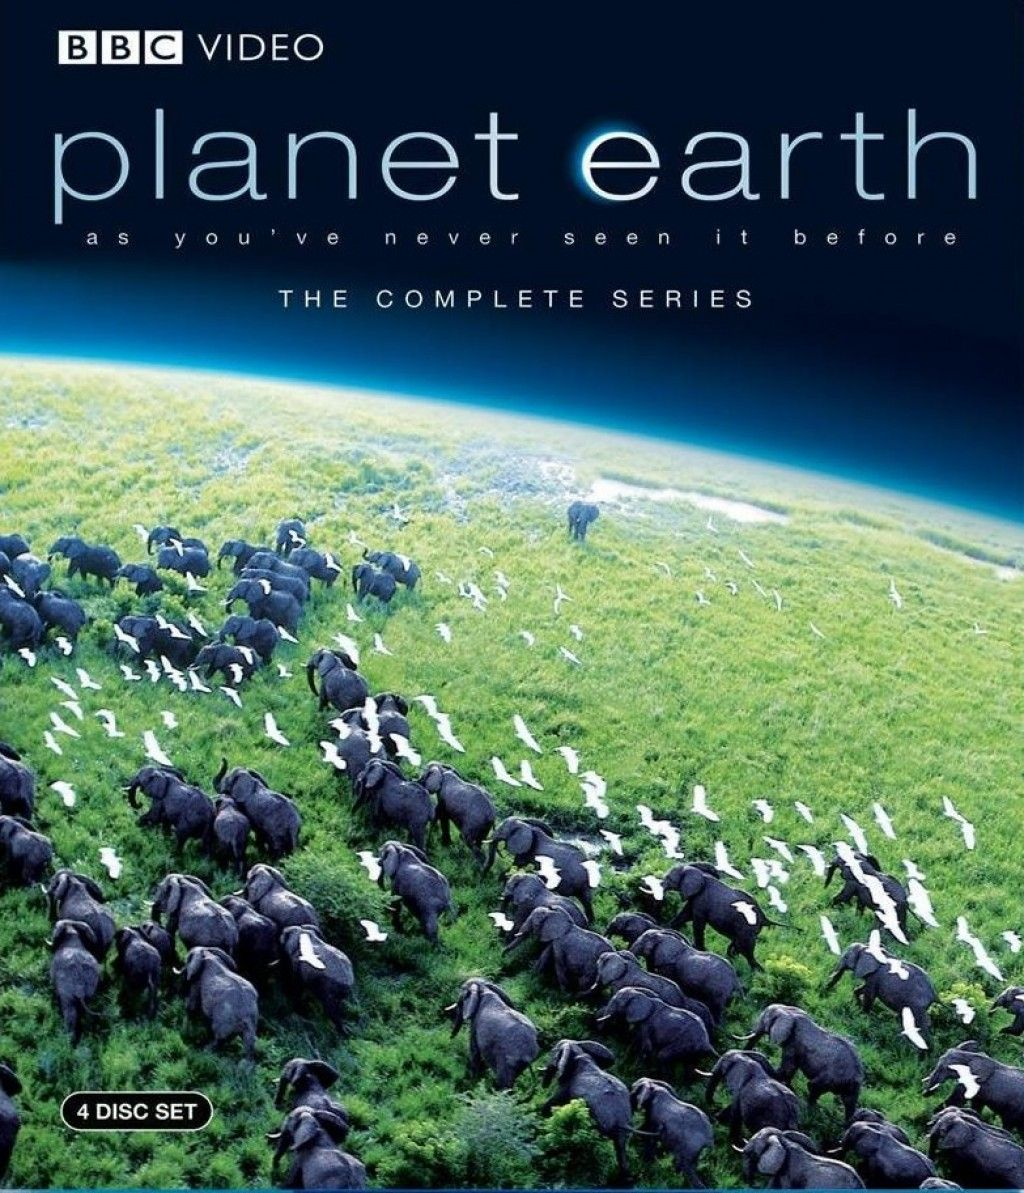 The Documentary Film Planet Earth Took Five Years And 25 Million Dollars To Make 2 000 Days At